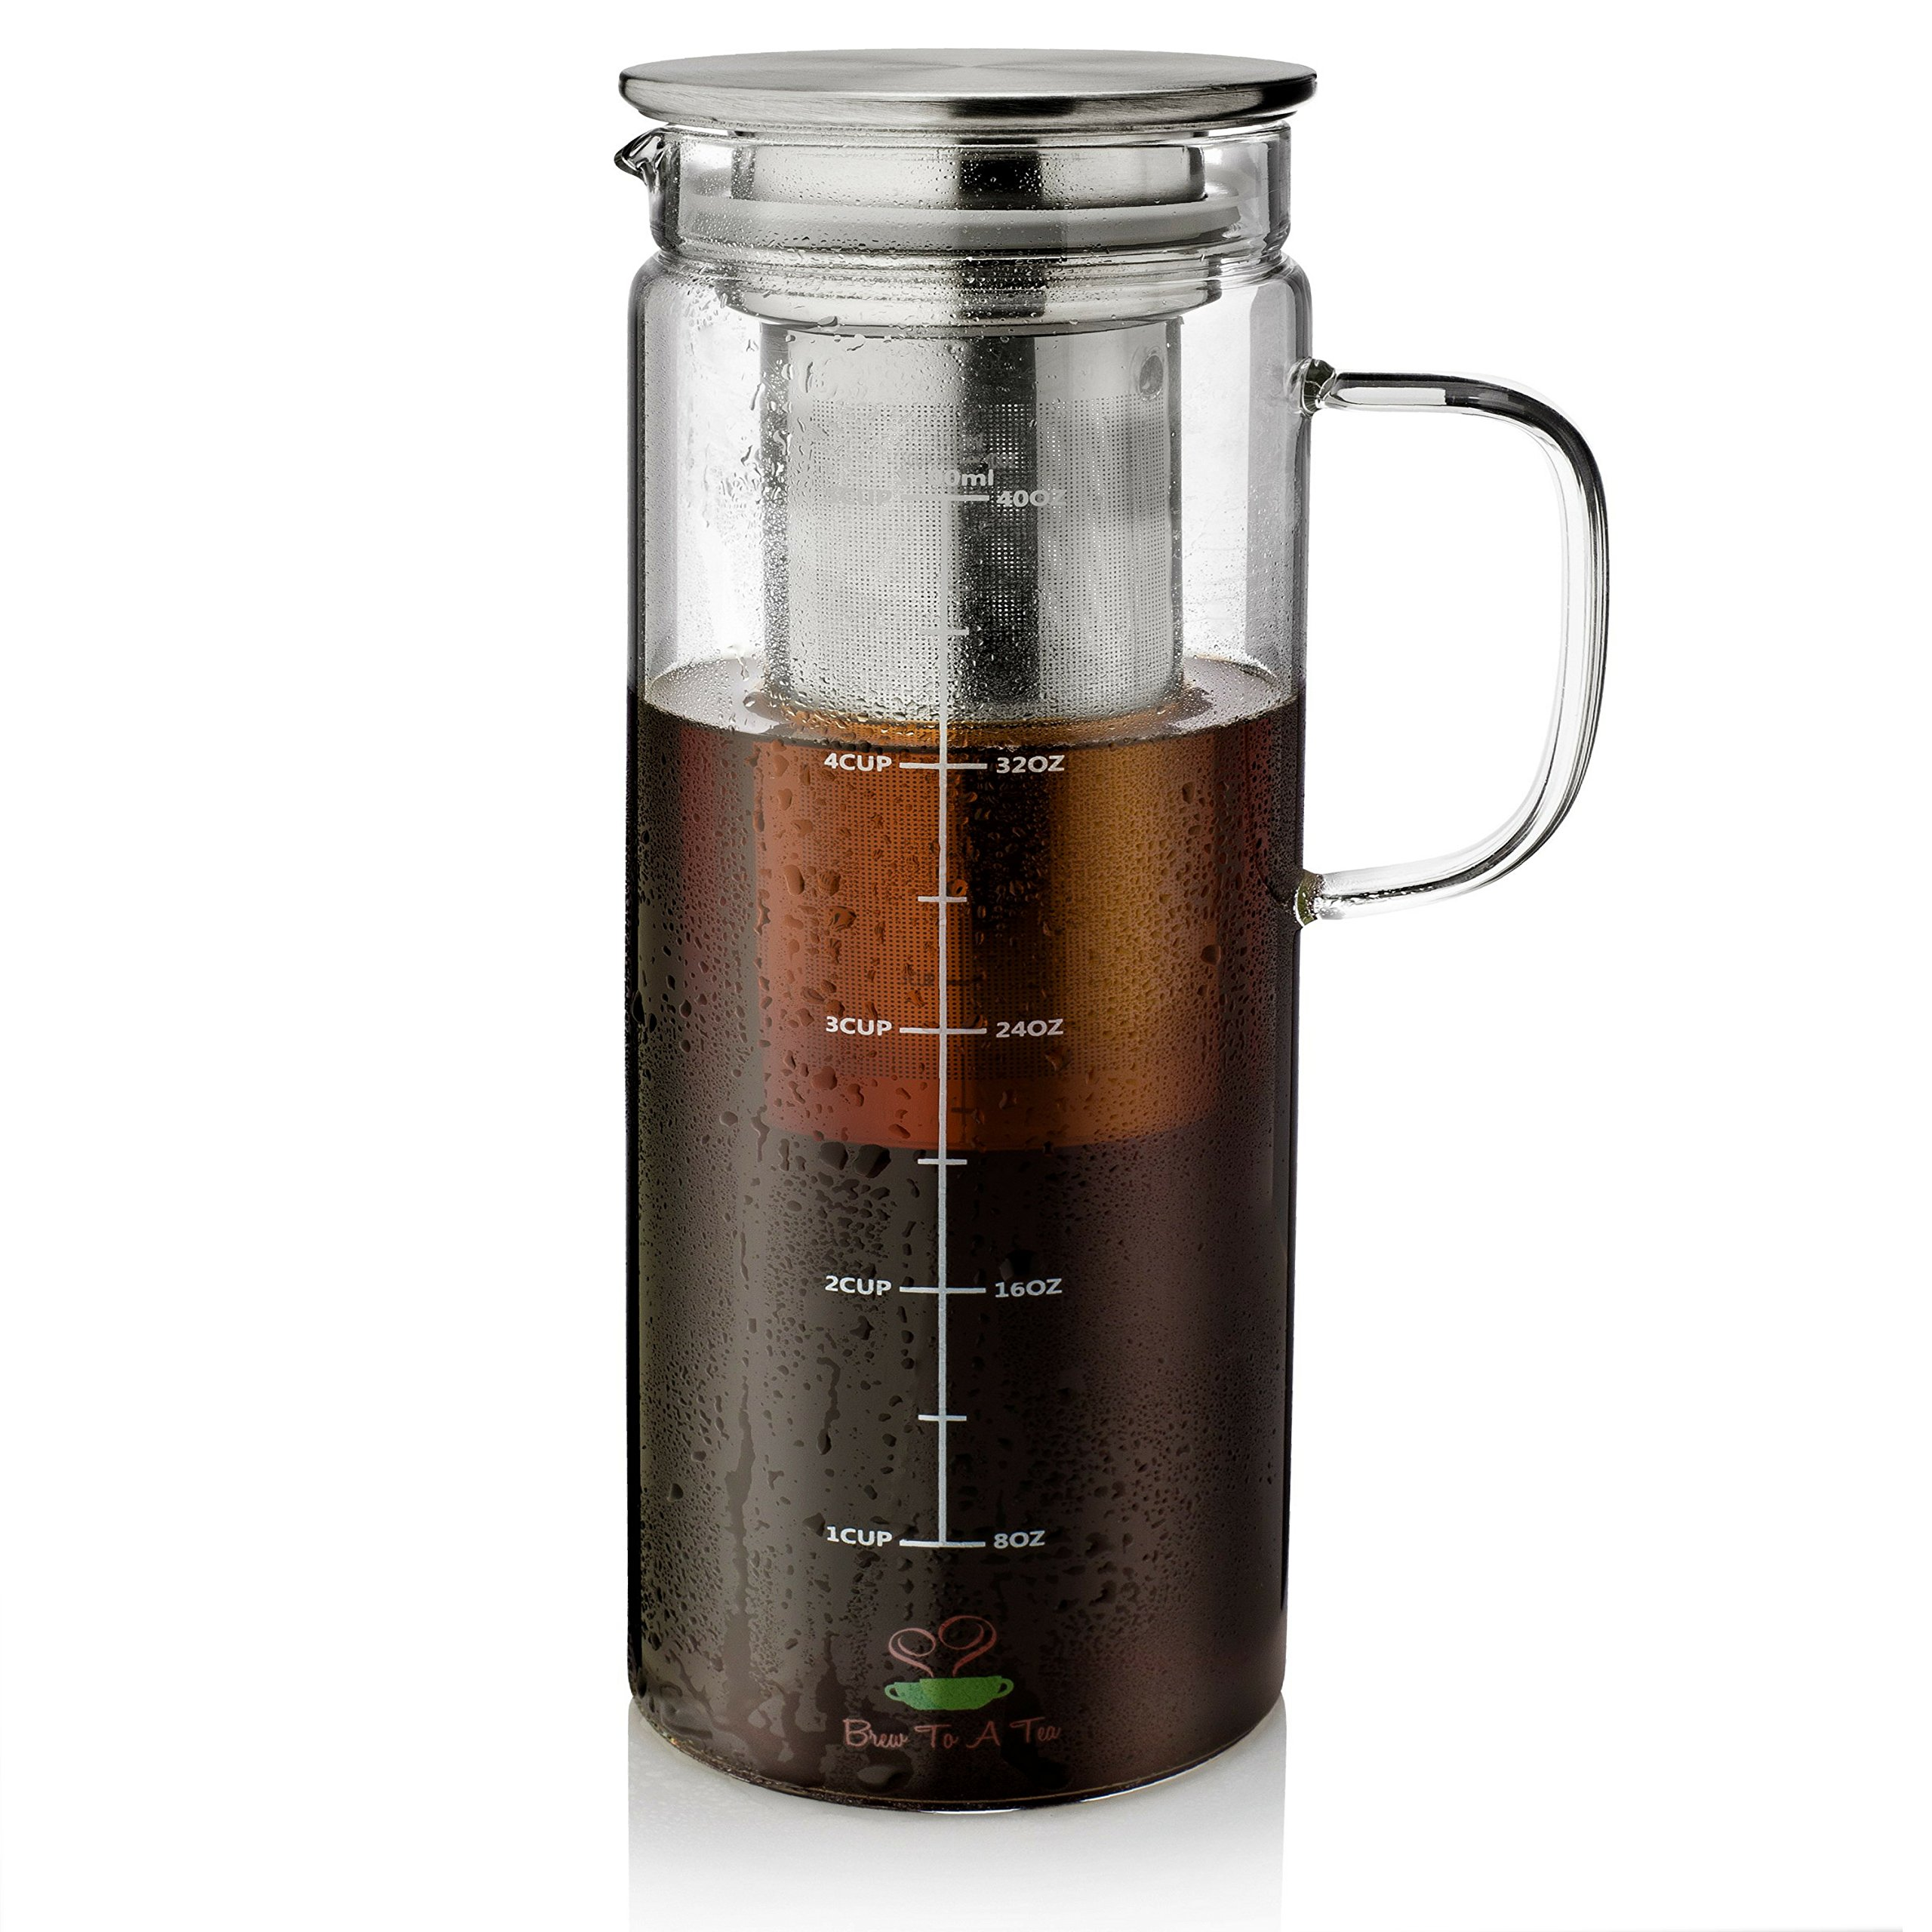 BTäT- Cold Brew Coffee Maker, 1.5 Quart,48 oz Iced Coffee Maker, Iced Tea Maker, Airtight Cold Brew Pitcher, Coffee Accessories, Cold Brew System, Cold Tea Brewing, Coffee Gift, Tea Maker with Infuser by Brew To A Tea